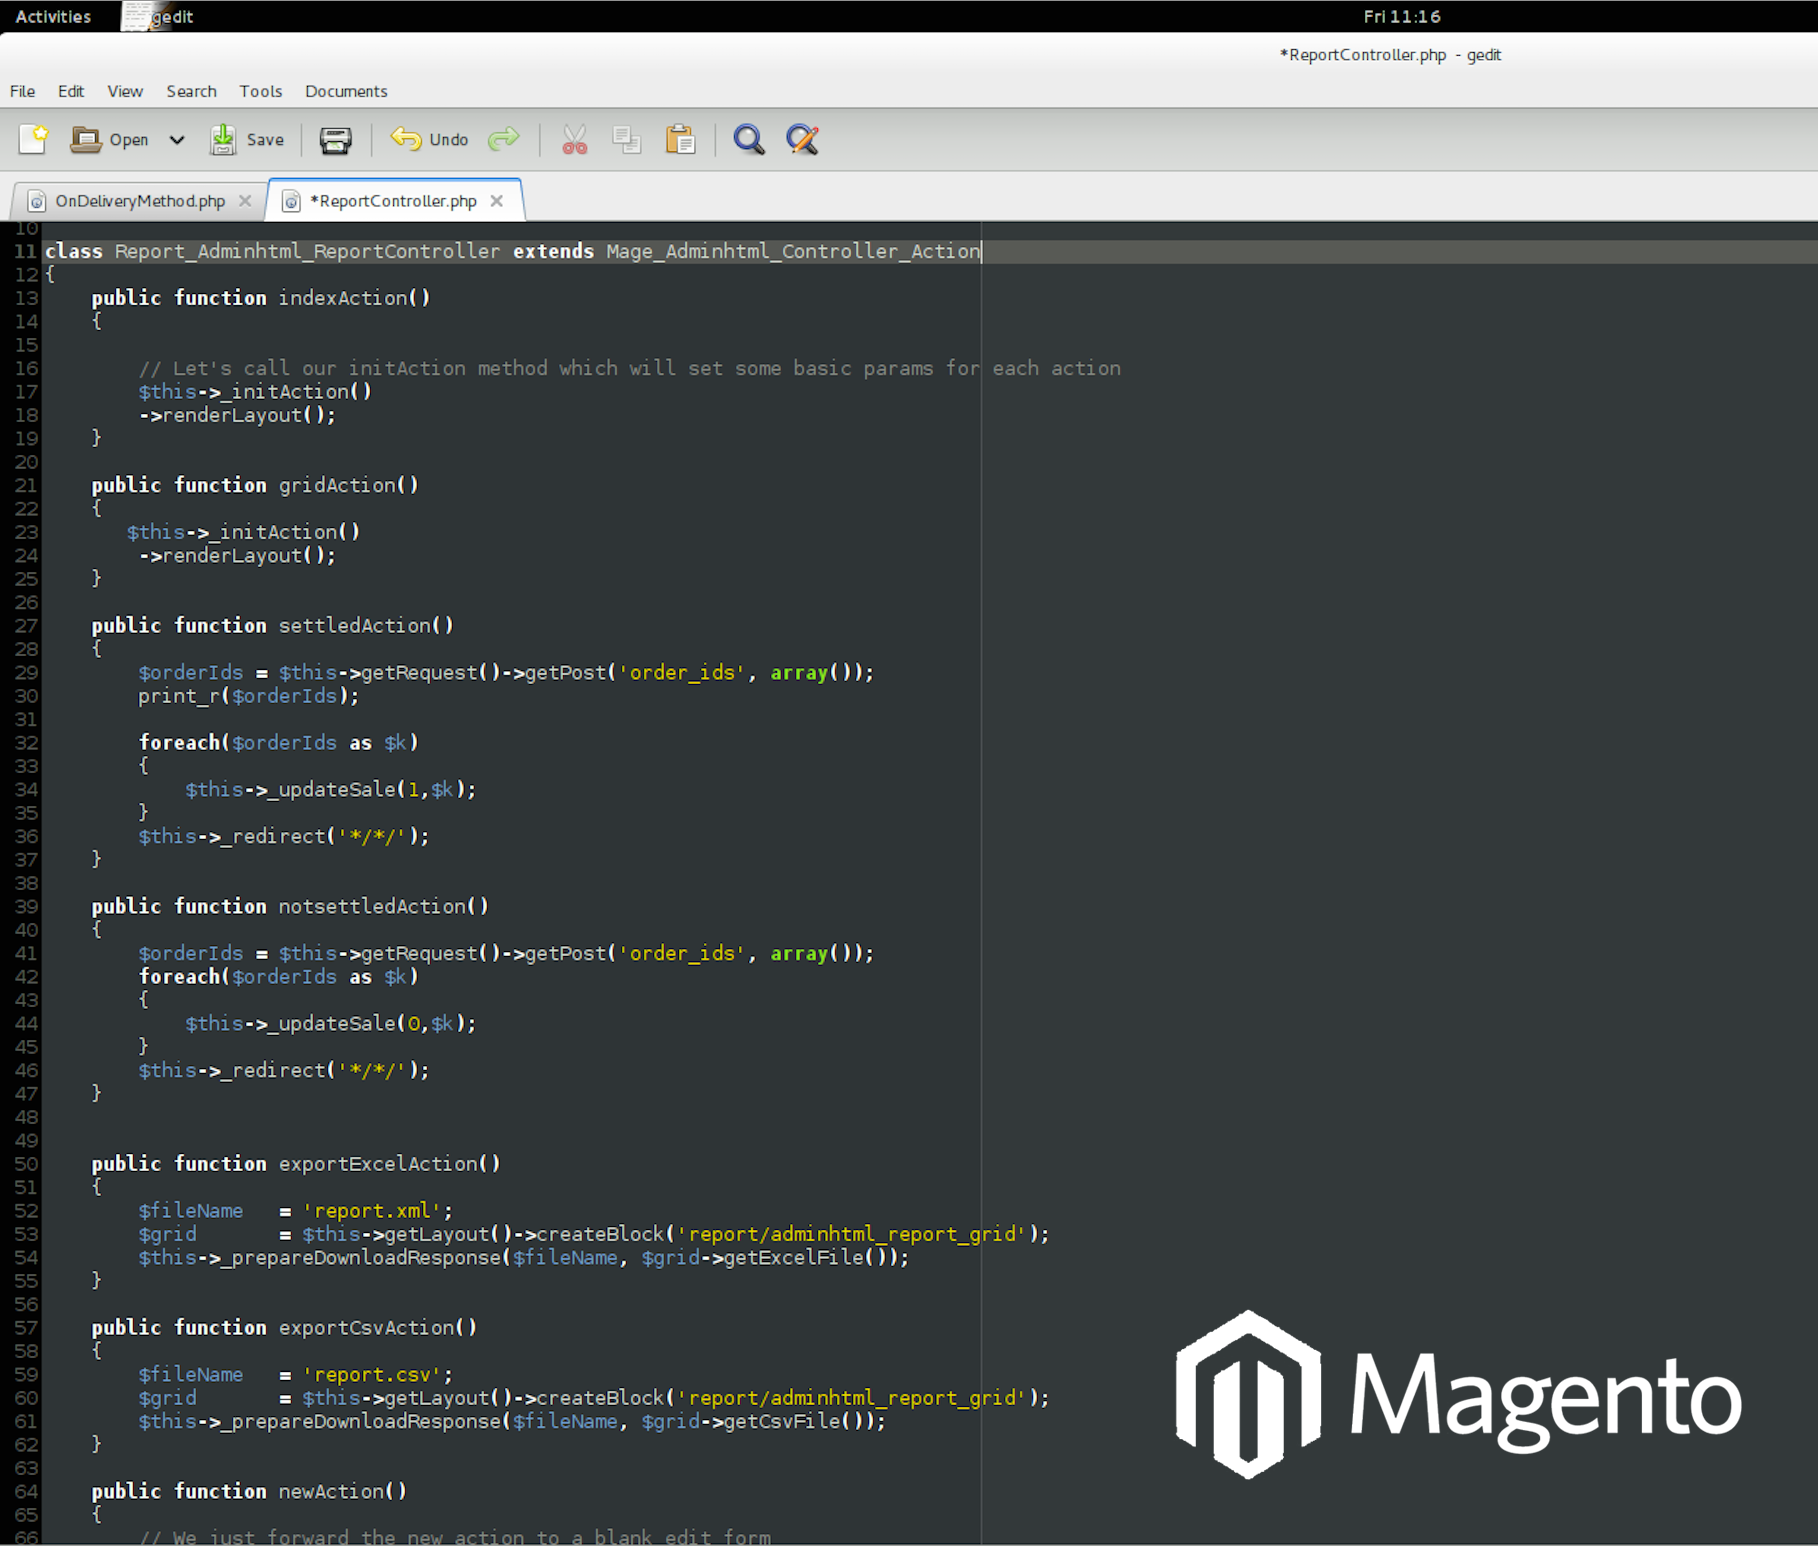 Das Magento E-Commerce System